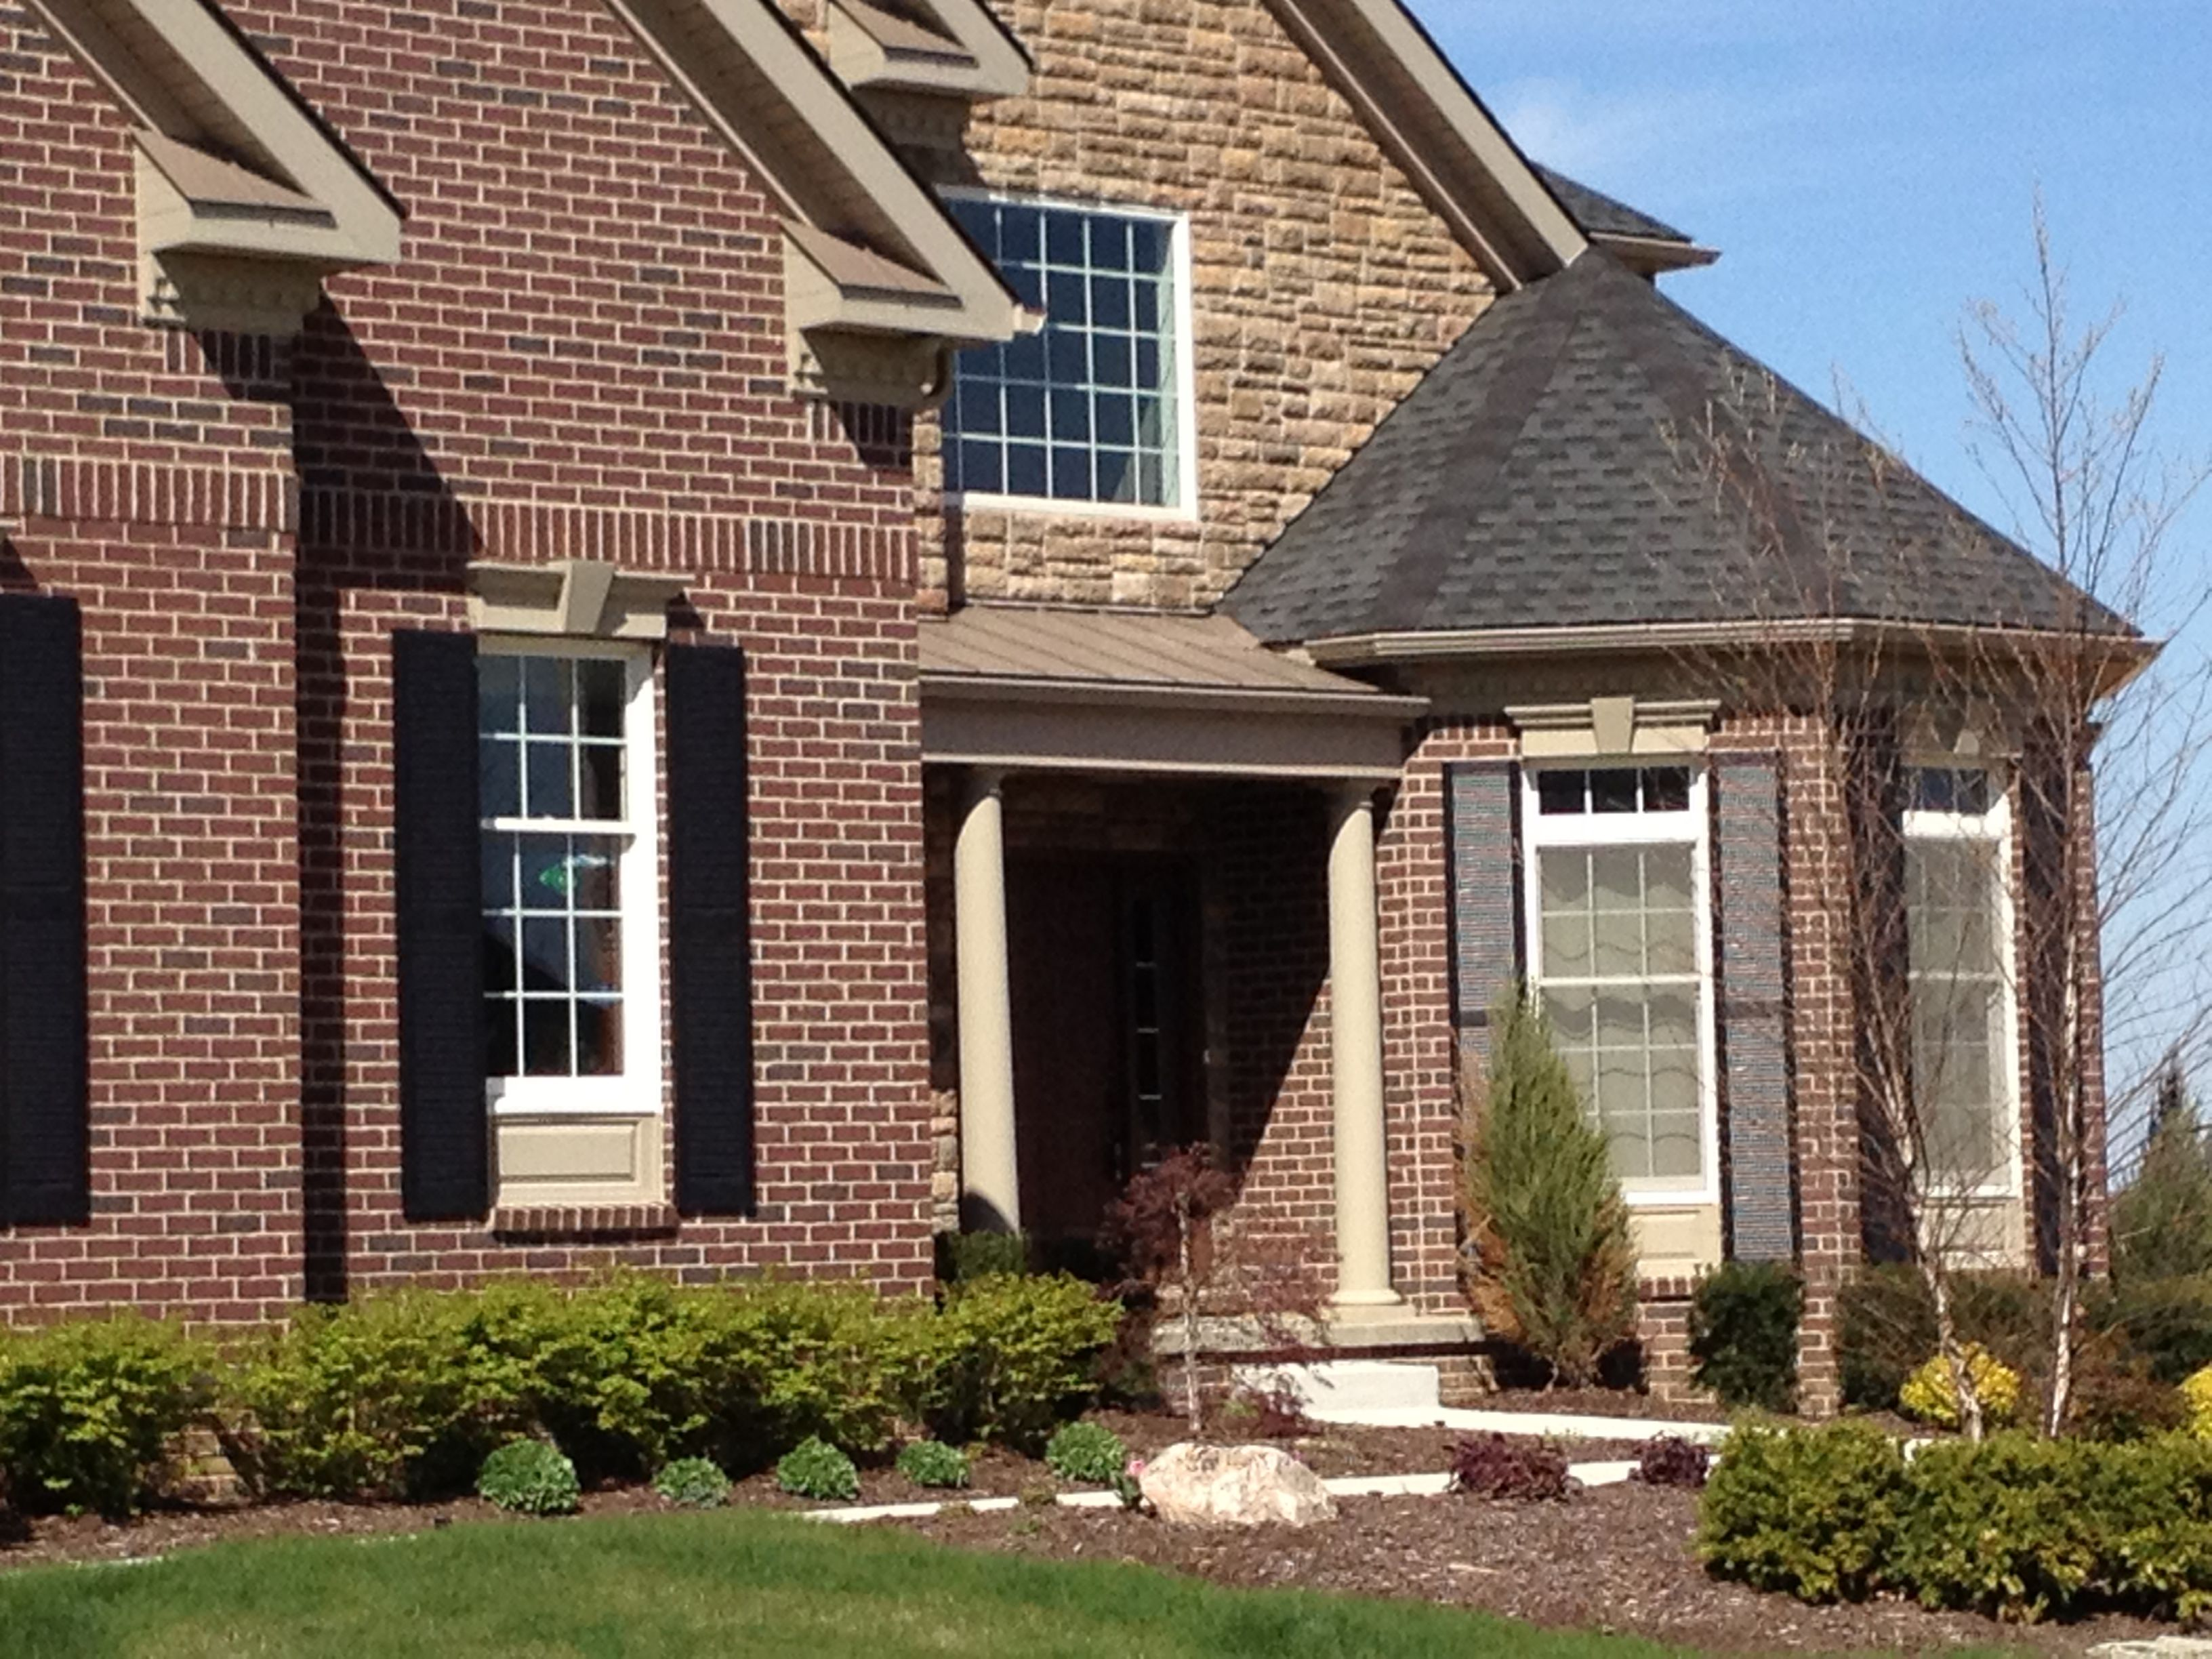 Brick And Stone Exterior Combinations Love The Brick And Stone Combination Mulberry Brick